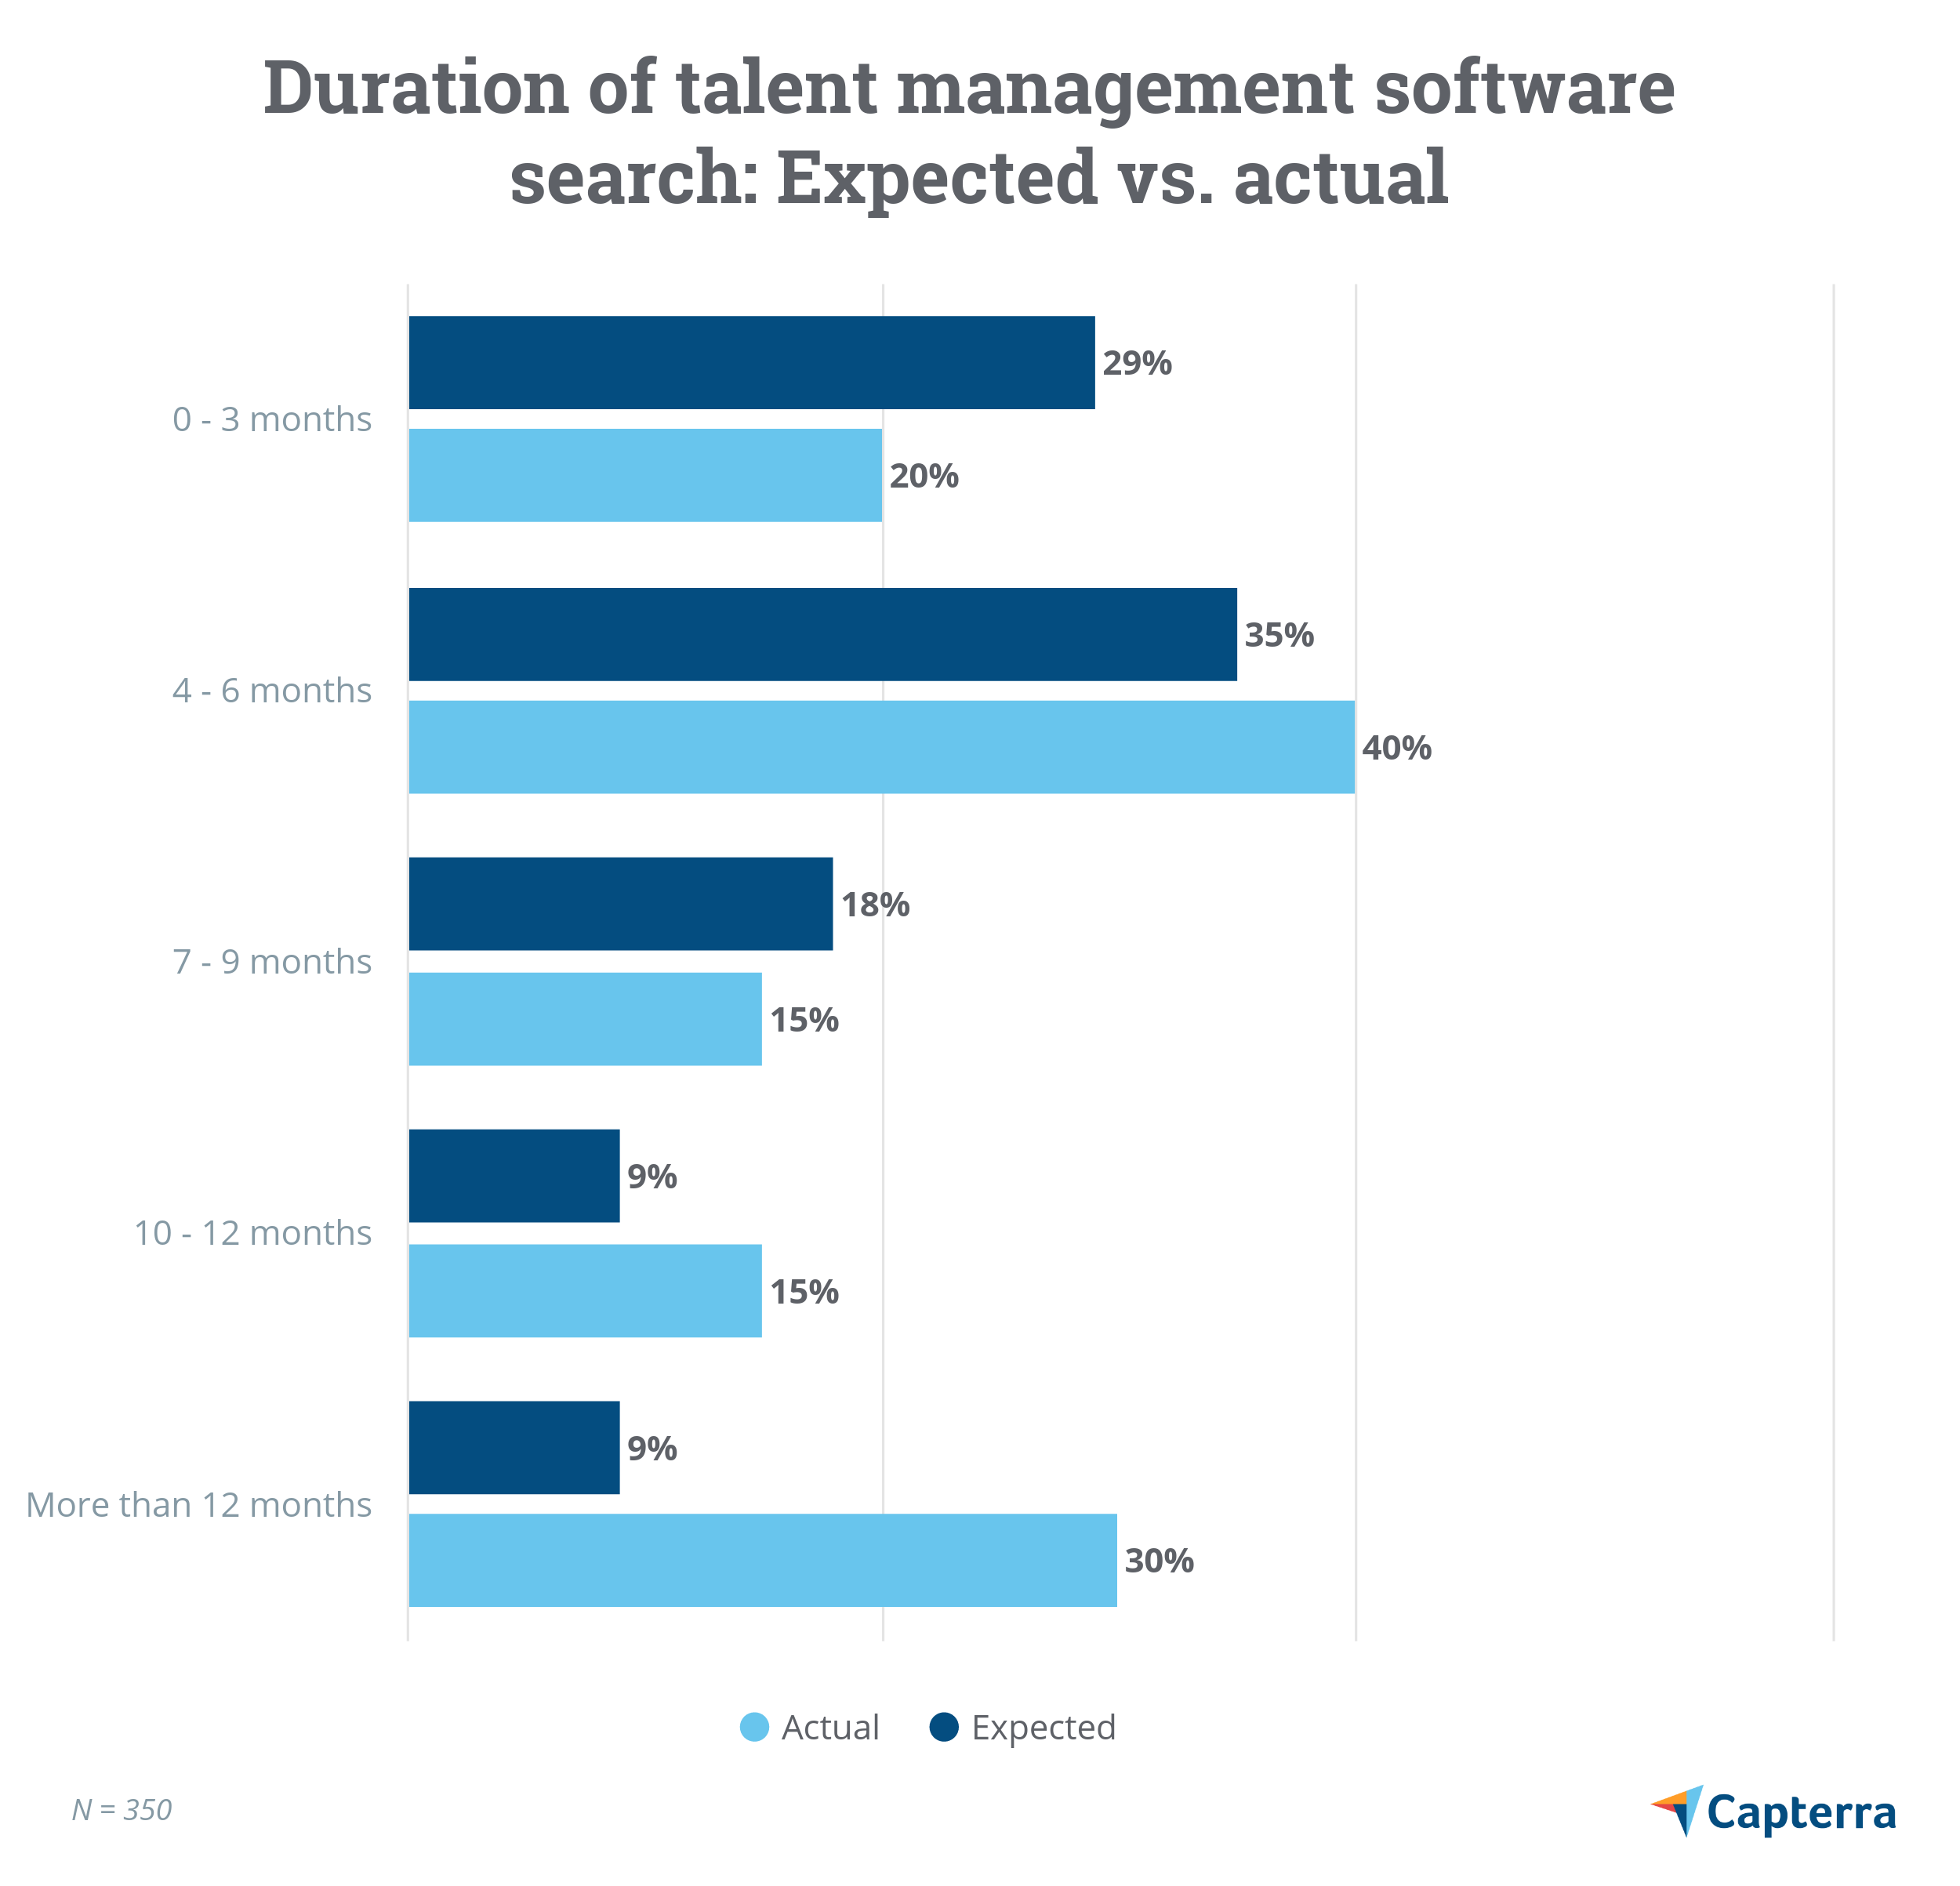 Duration of talent management software search: expected vs. actual